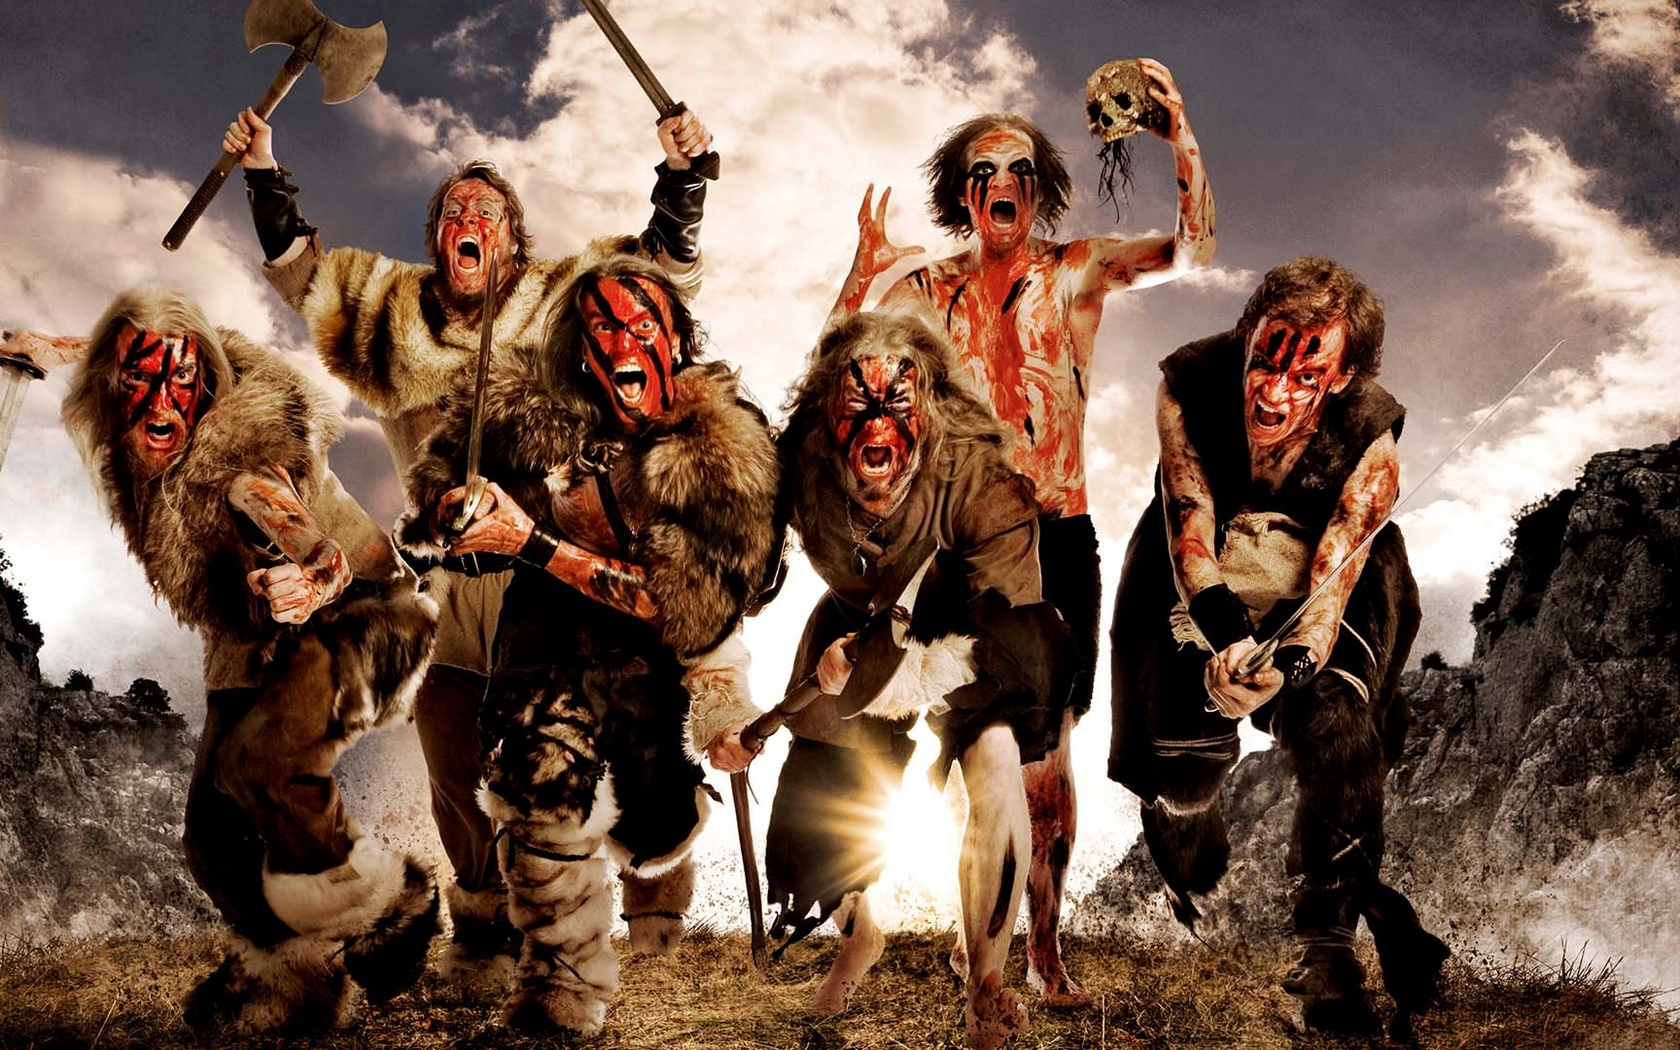 Download wallpaper 1680x1050 turisas arm skull image scream 1680x1050